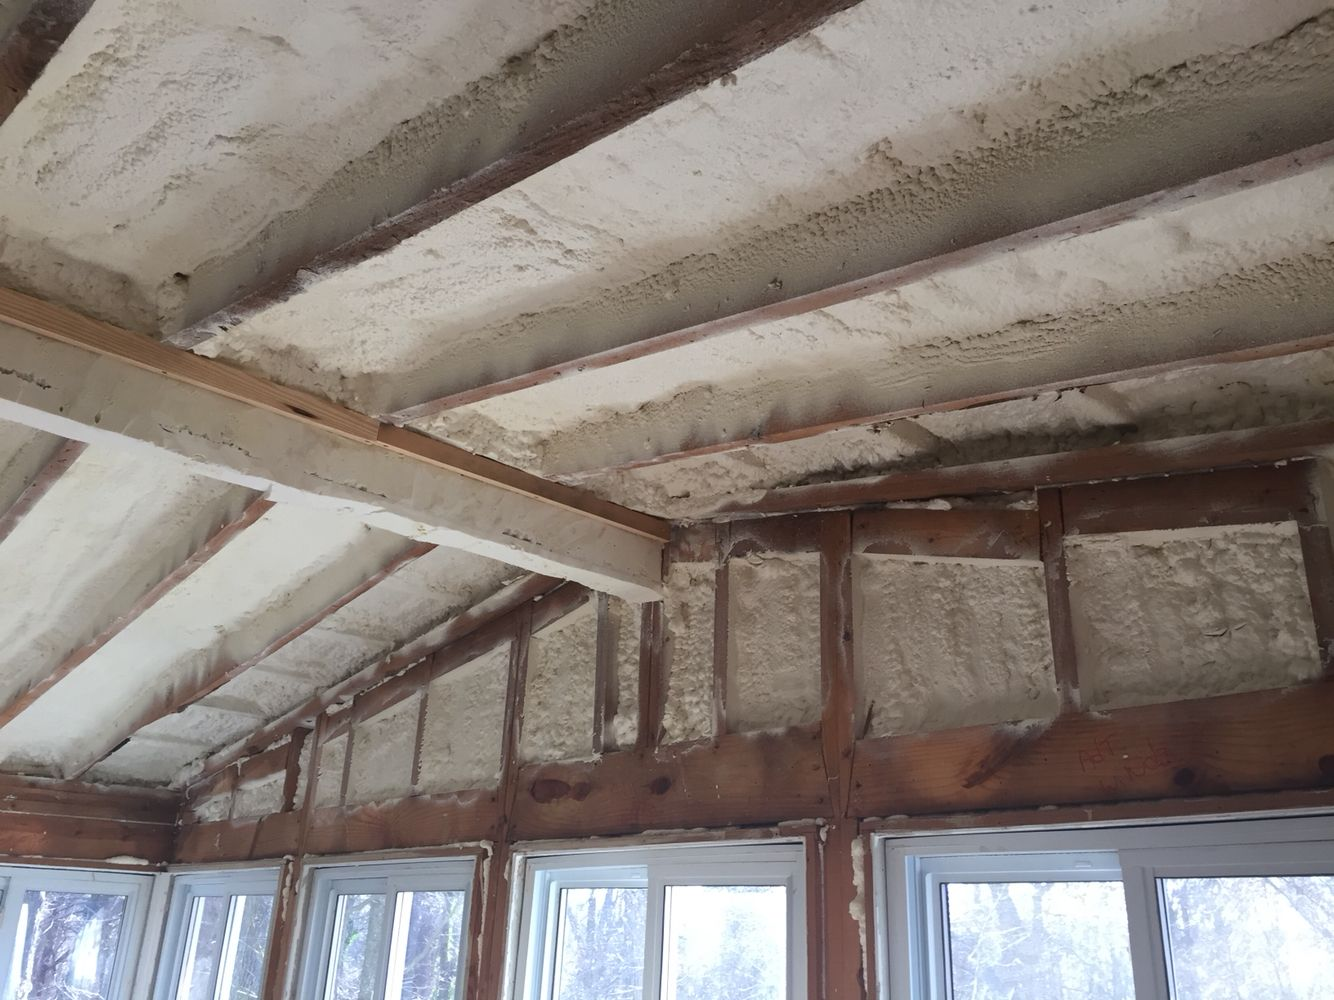 Closed cell spray foam insulation installed on the roof